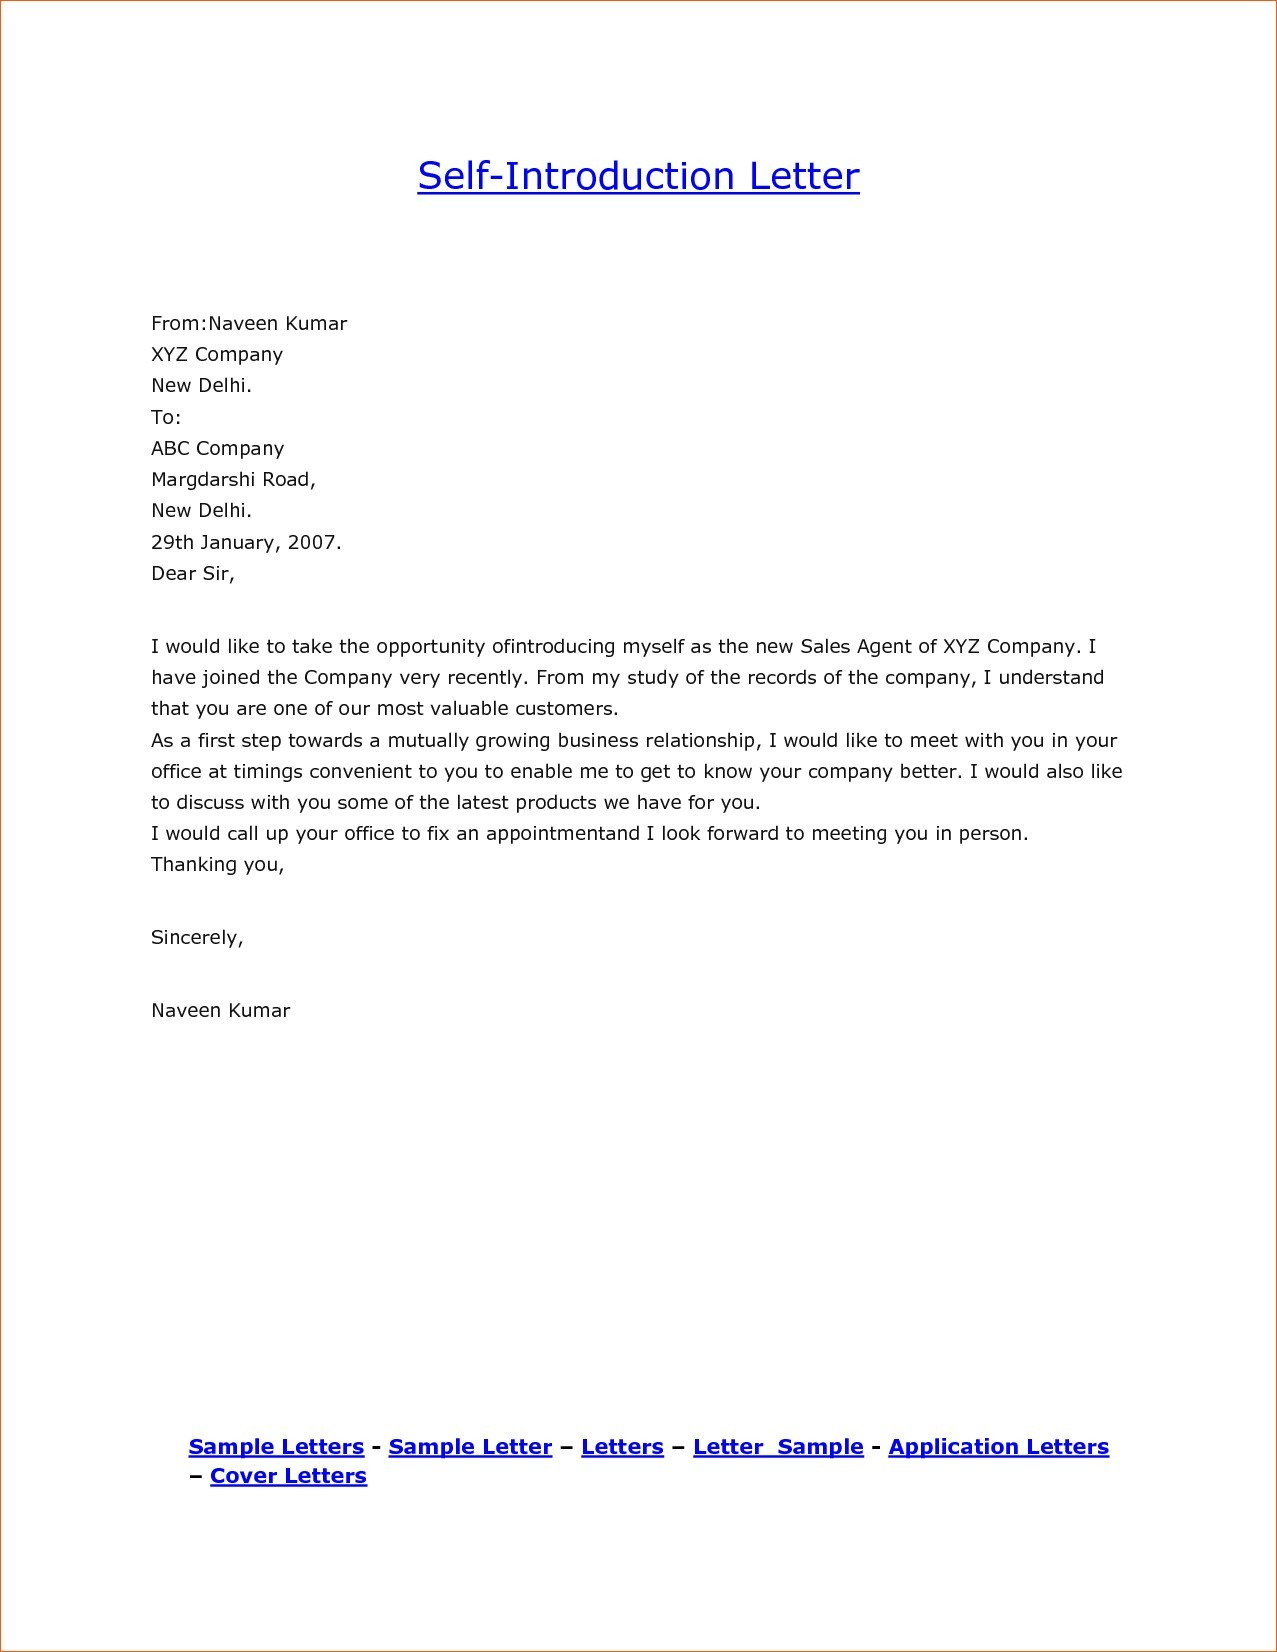 Cleaning business introduction letter template collection letter cleaning business introduction letter template introduction letter format for trading pany new samples business friedricerecipe